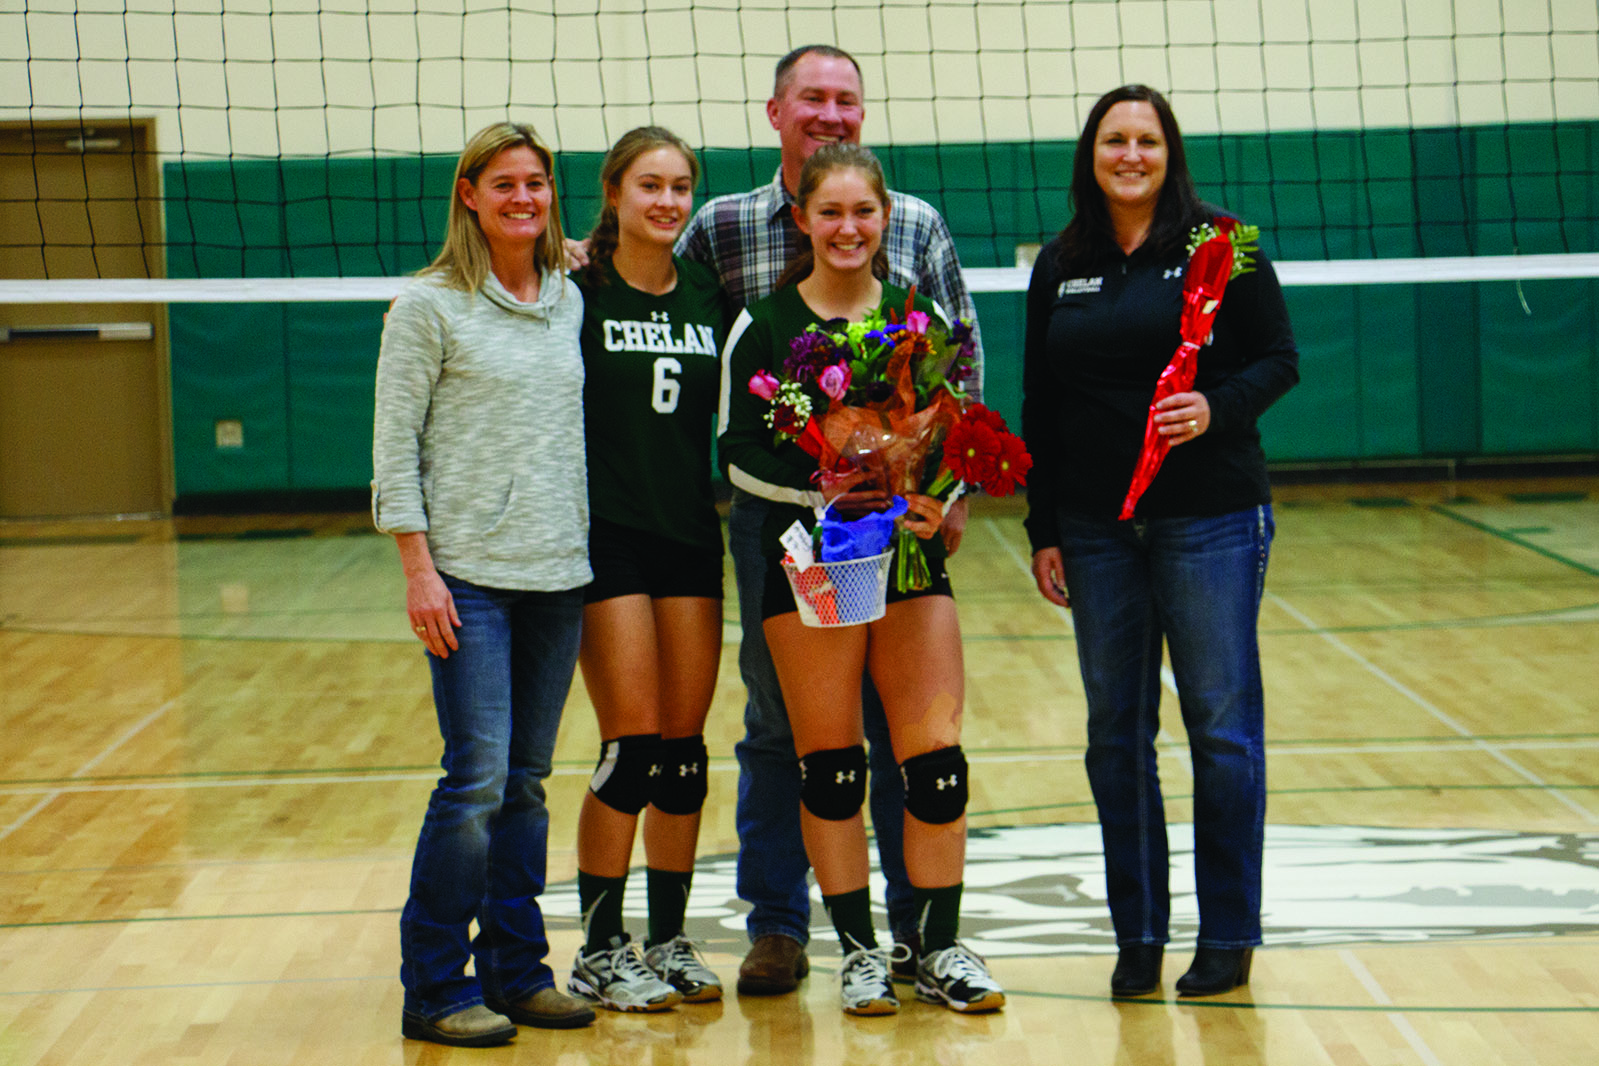 Ashley Oswald (center) stands with her parents, sister/teammate Molly Oswald, and Head Coach Jenifer Rainville (right), in celebration of Senior Night.